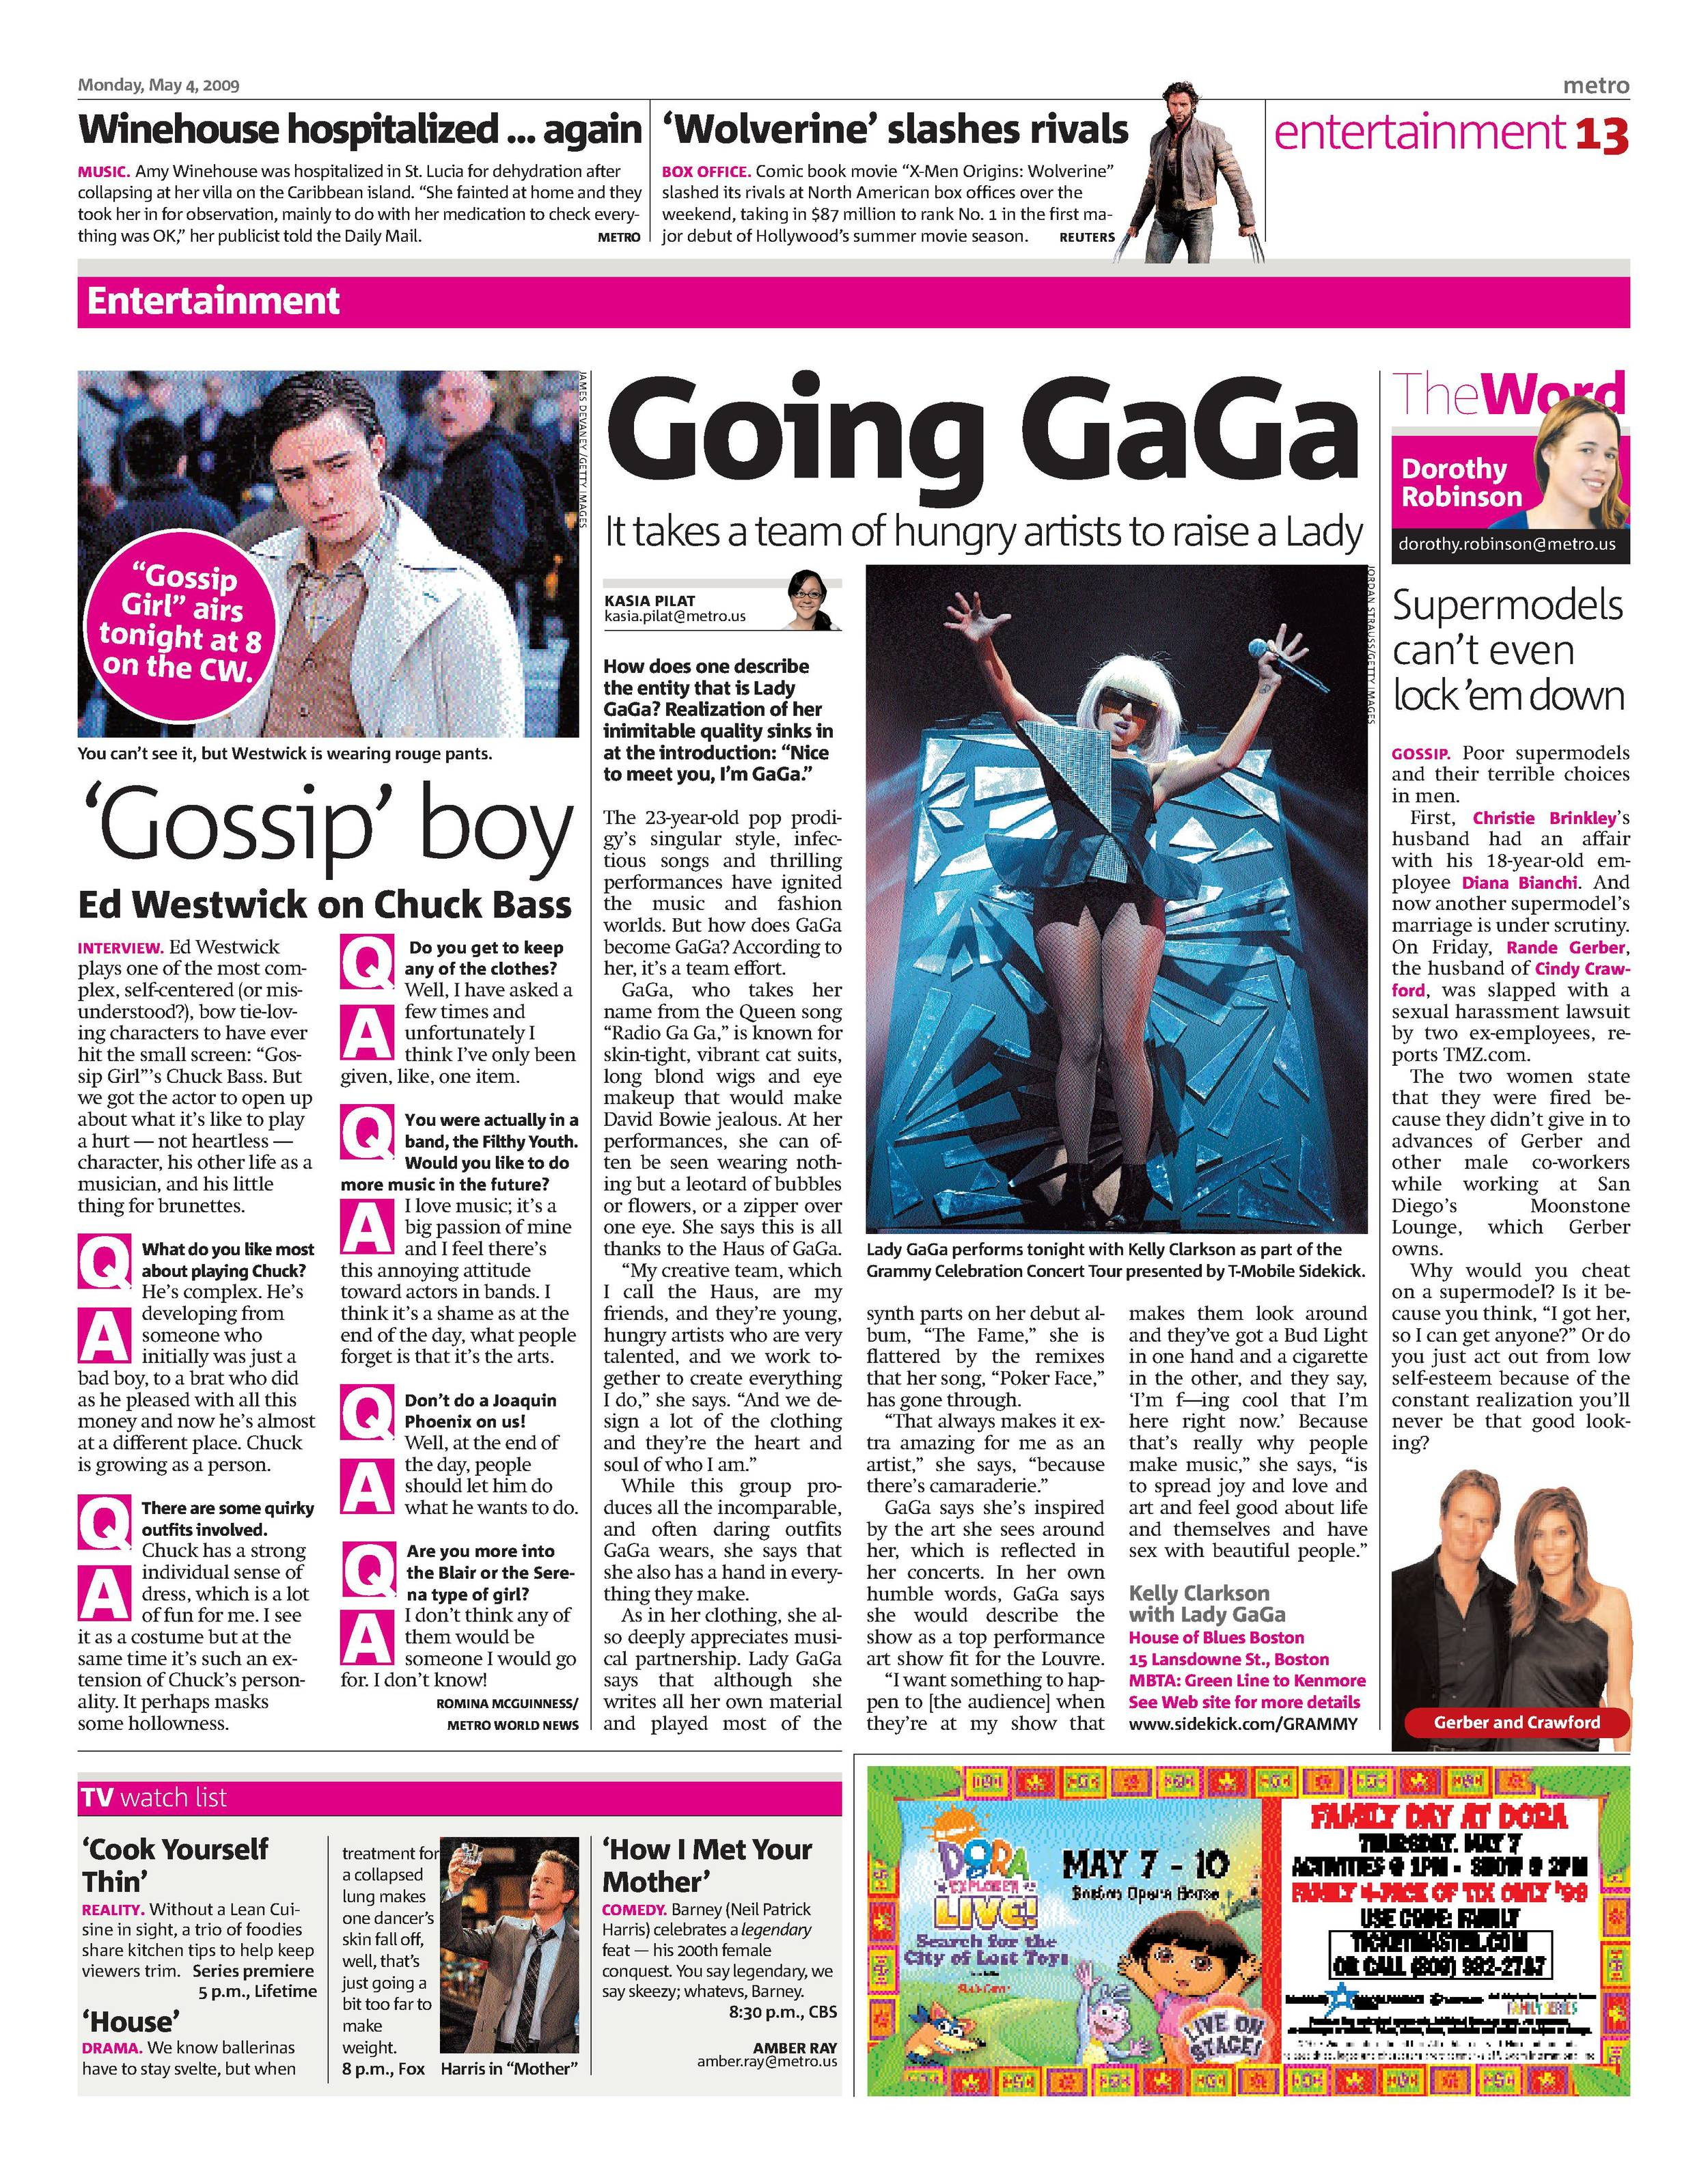 """In 2008, I interviewed   Lady Gaga  when she was just 23 years old.At that point in her career her name was still susceptible to egregious capitalization, as evidenced in the headline,""""Going GaGa."""""""